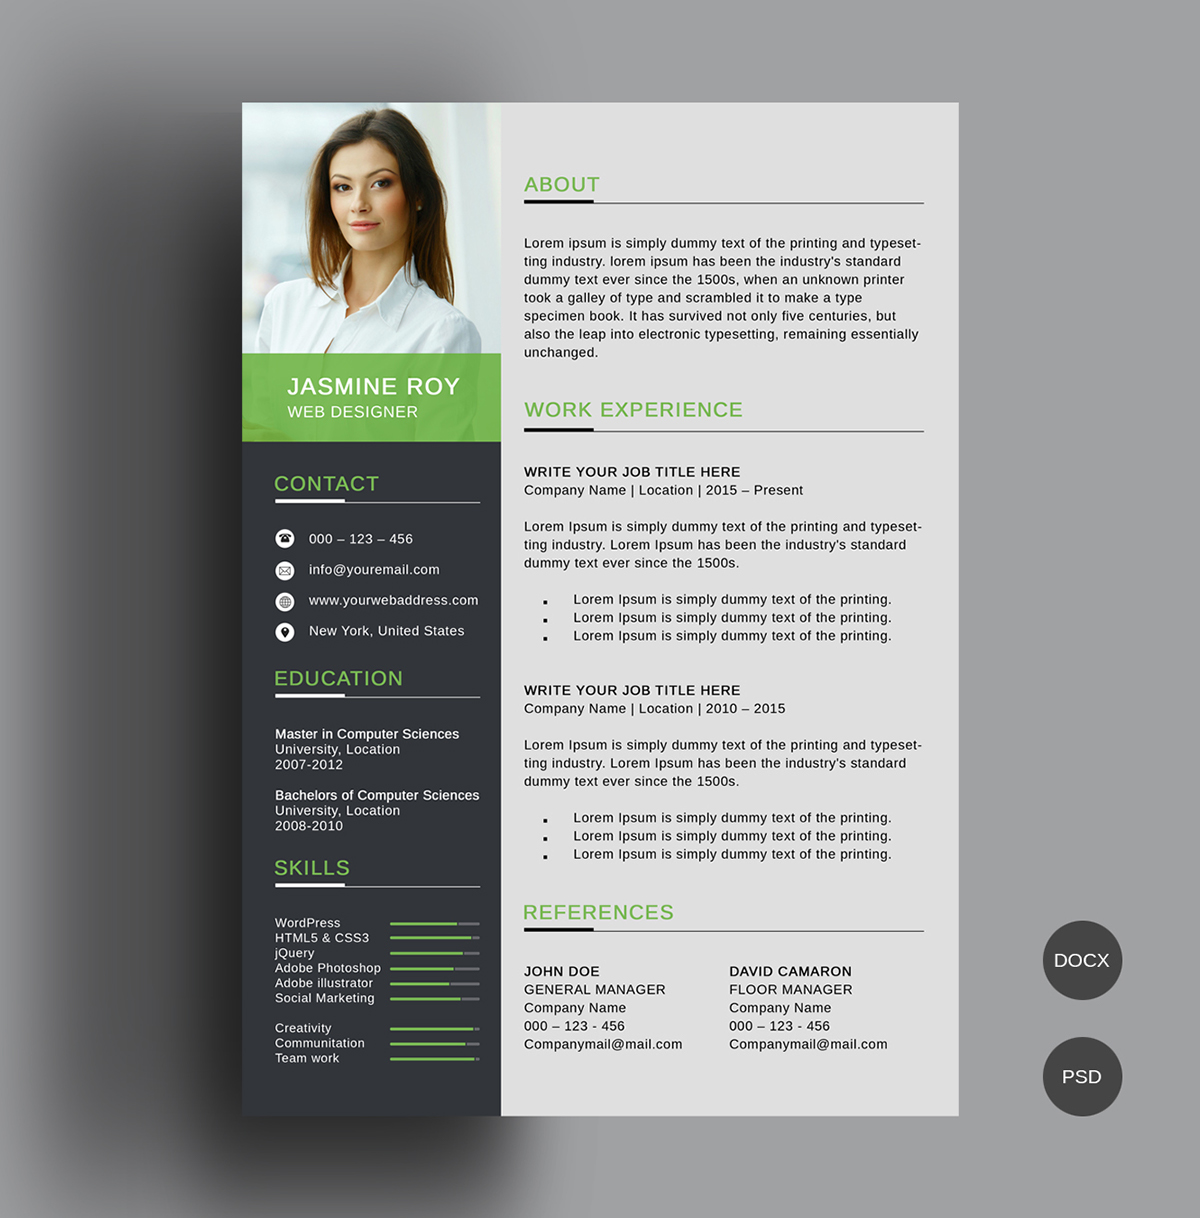 Clean Resume Template Free Download, Available In 3 Different Colors In  Photoshop (.psd) And MS Word (.docx) Format. Beautiful Resume Is Fully  Customizable ...